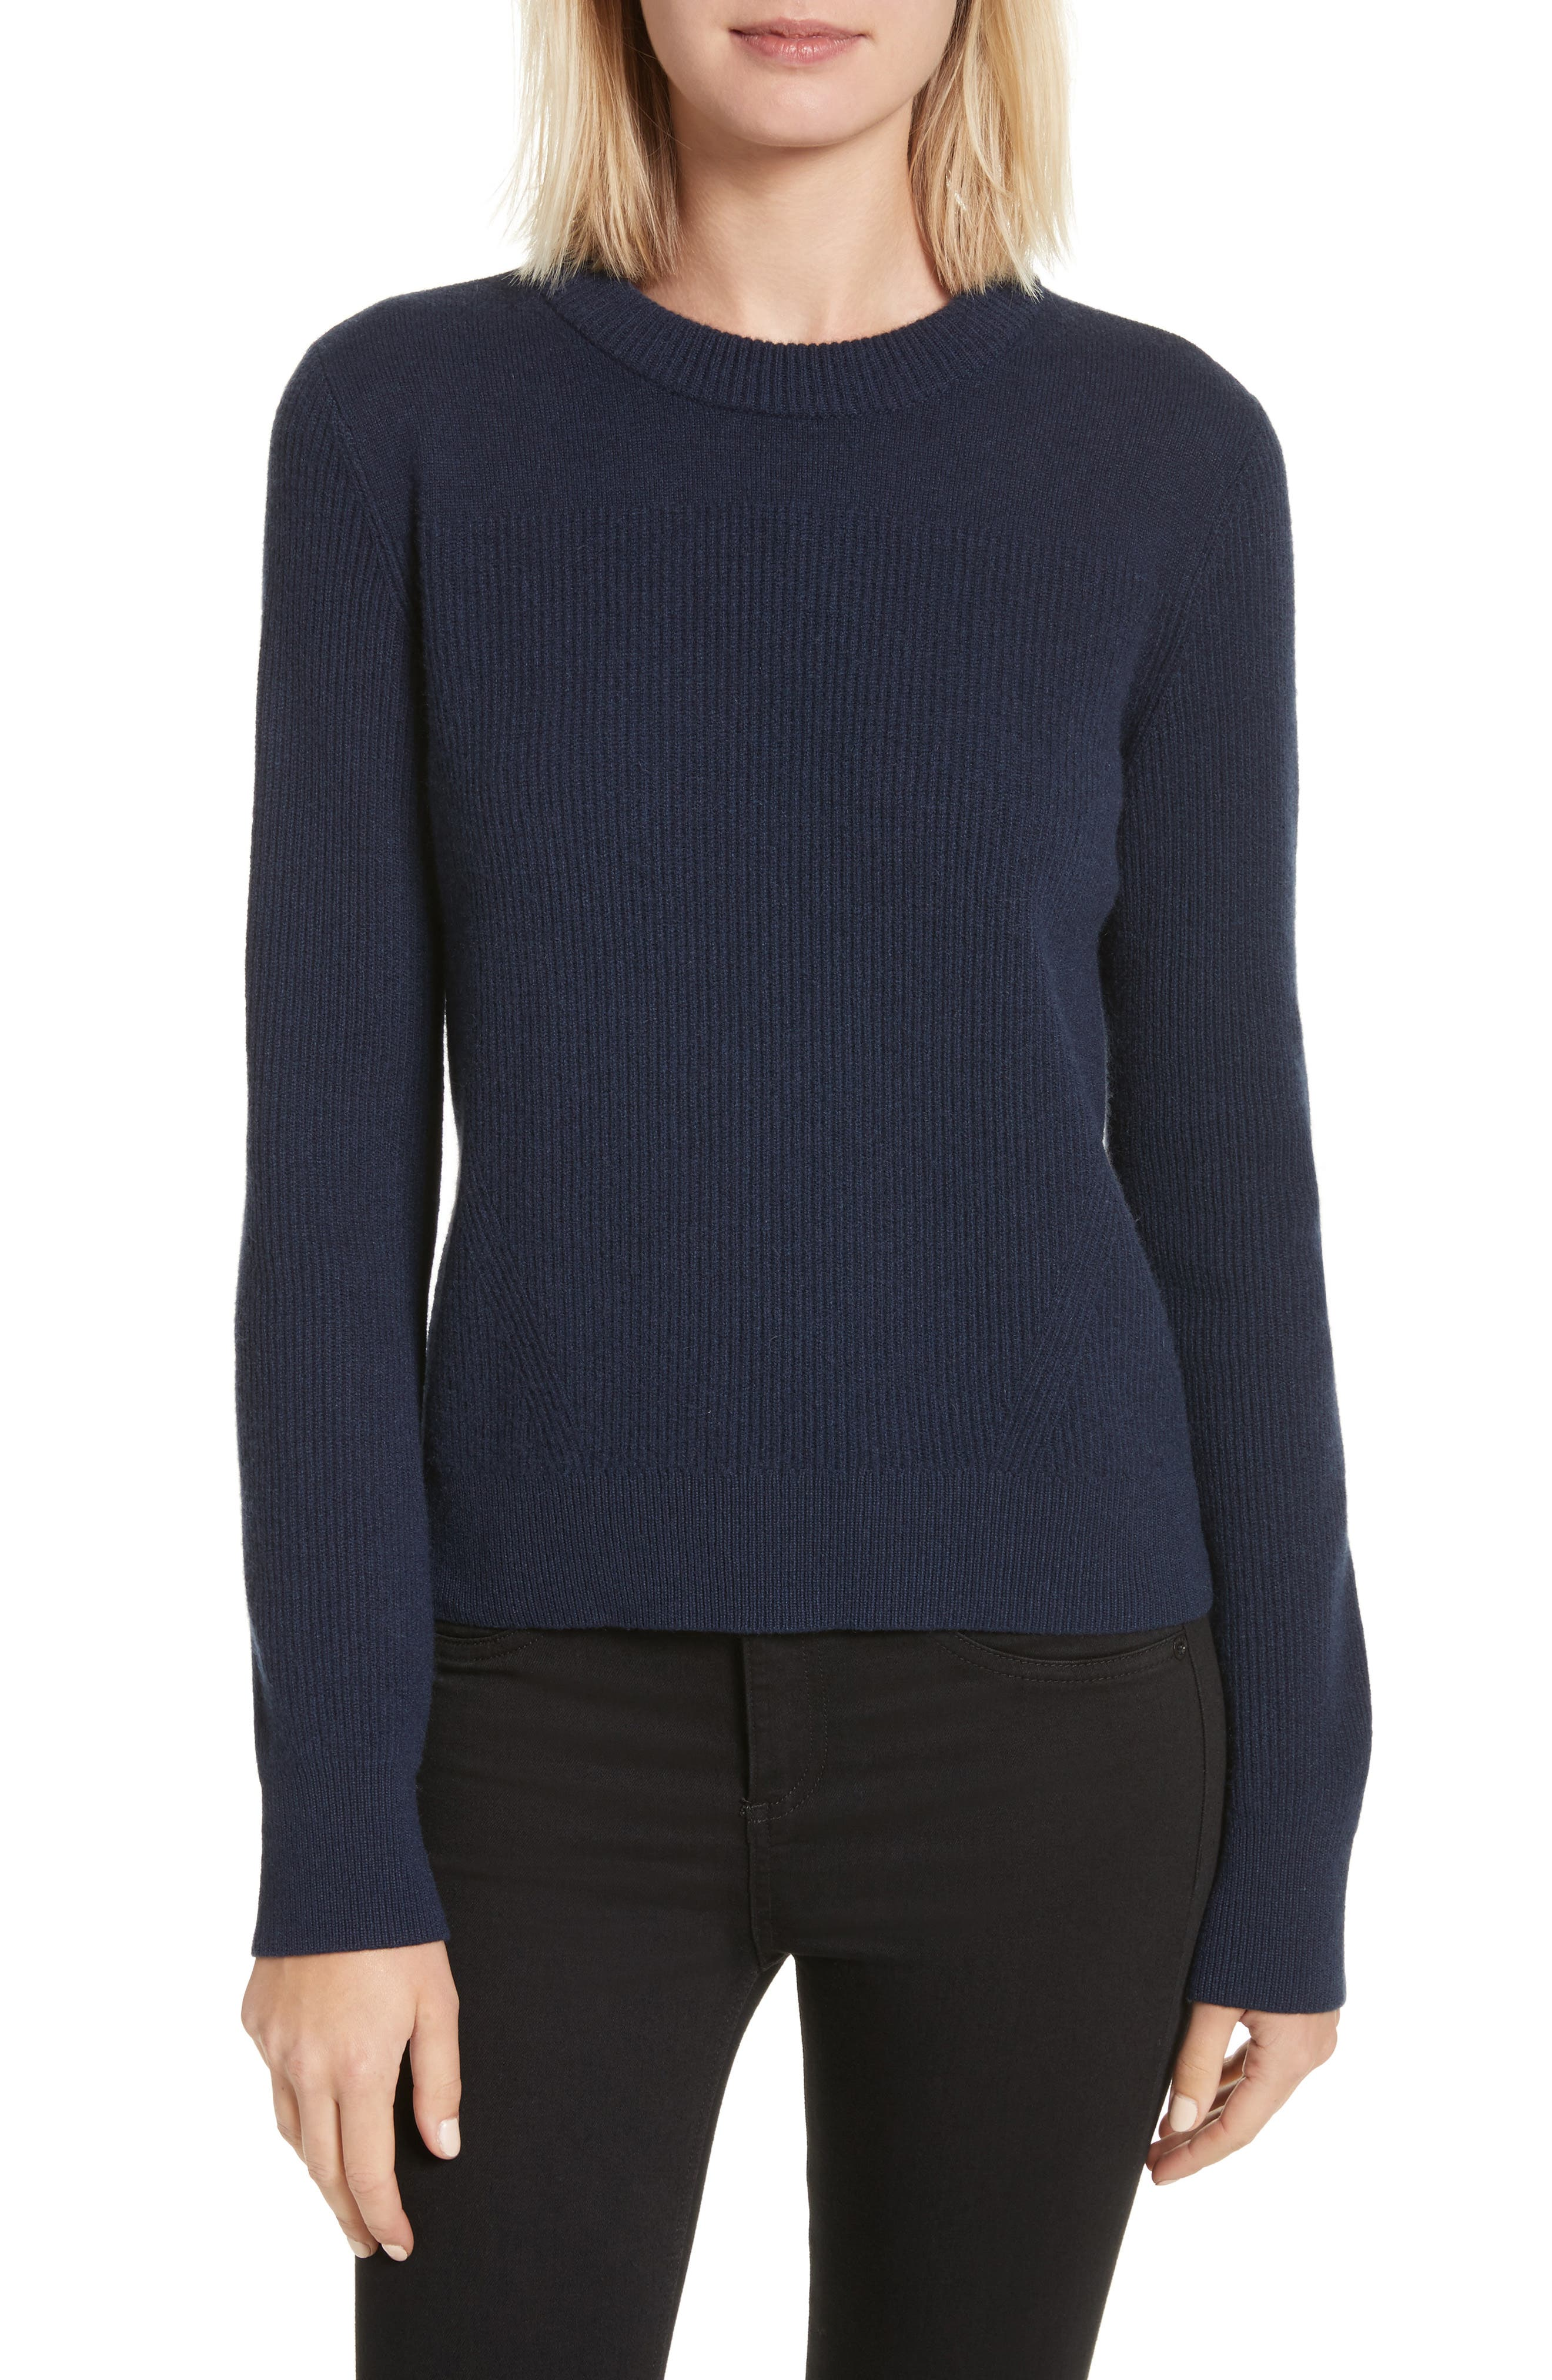 Ace Cashmere Crop Sweater,                         Main,                         color, Navy